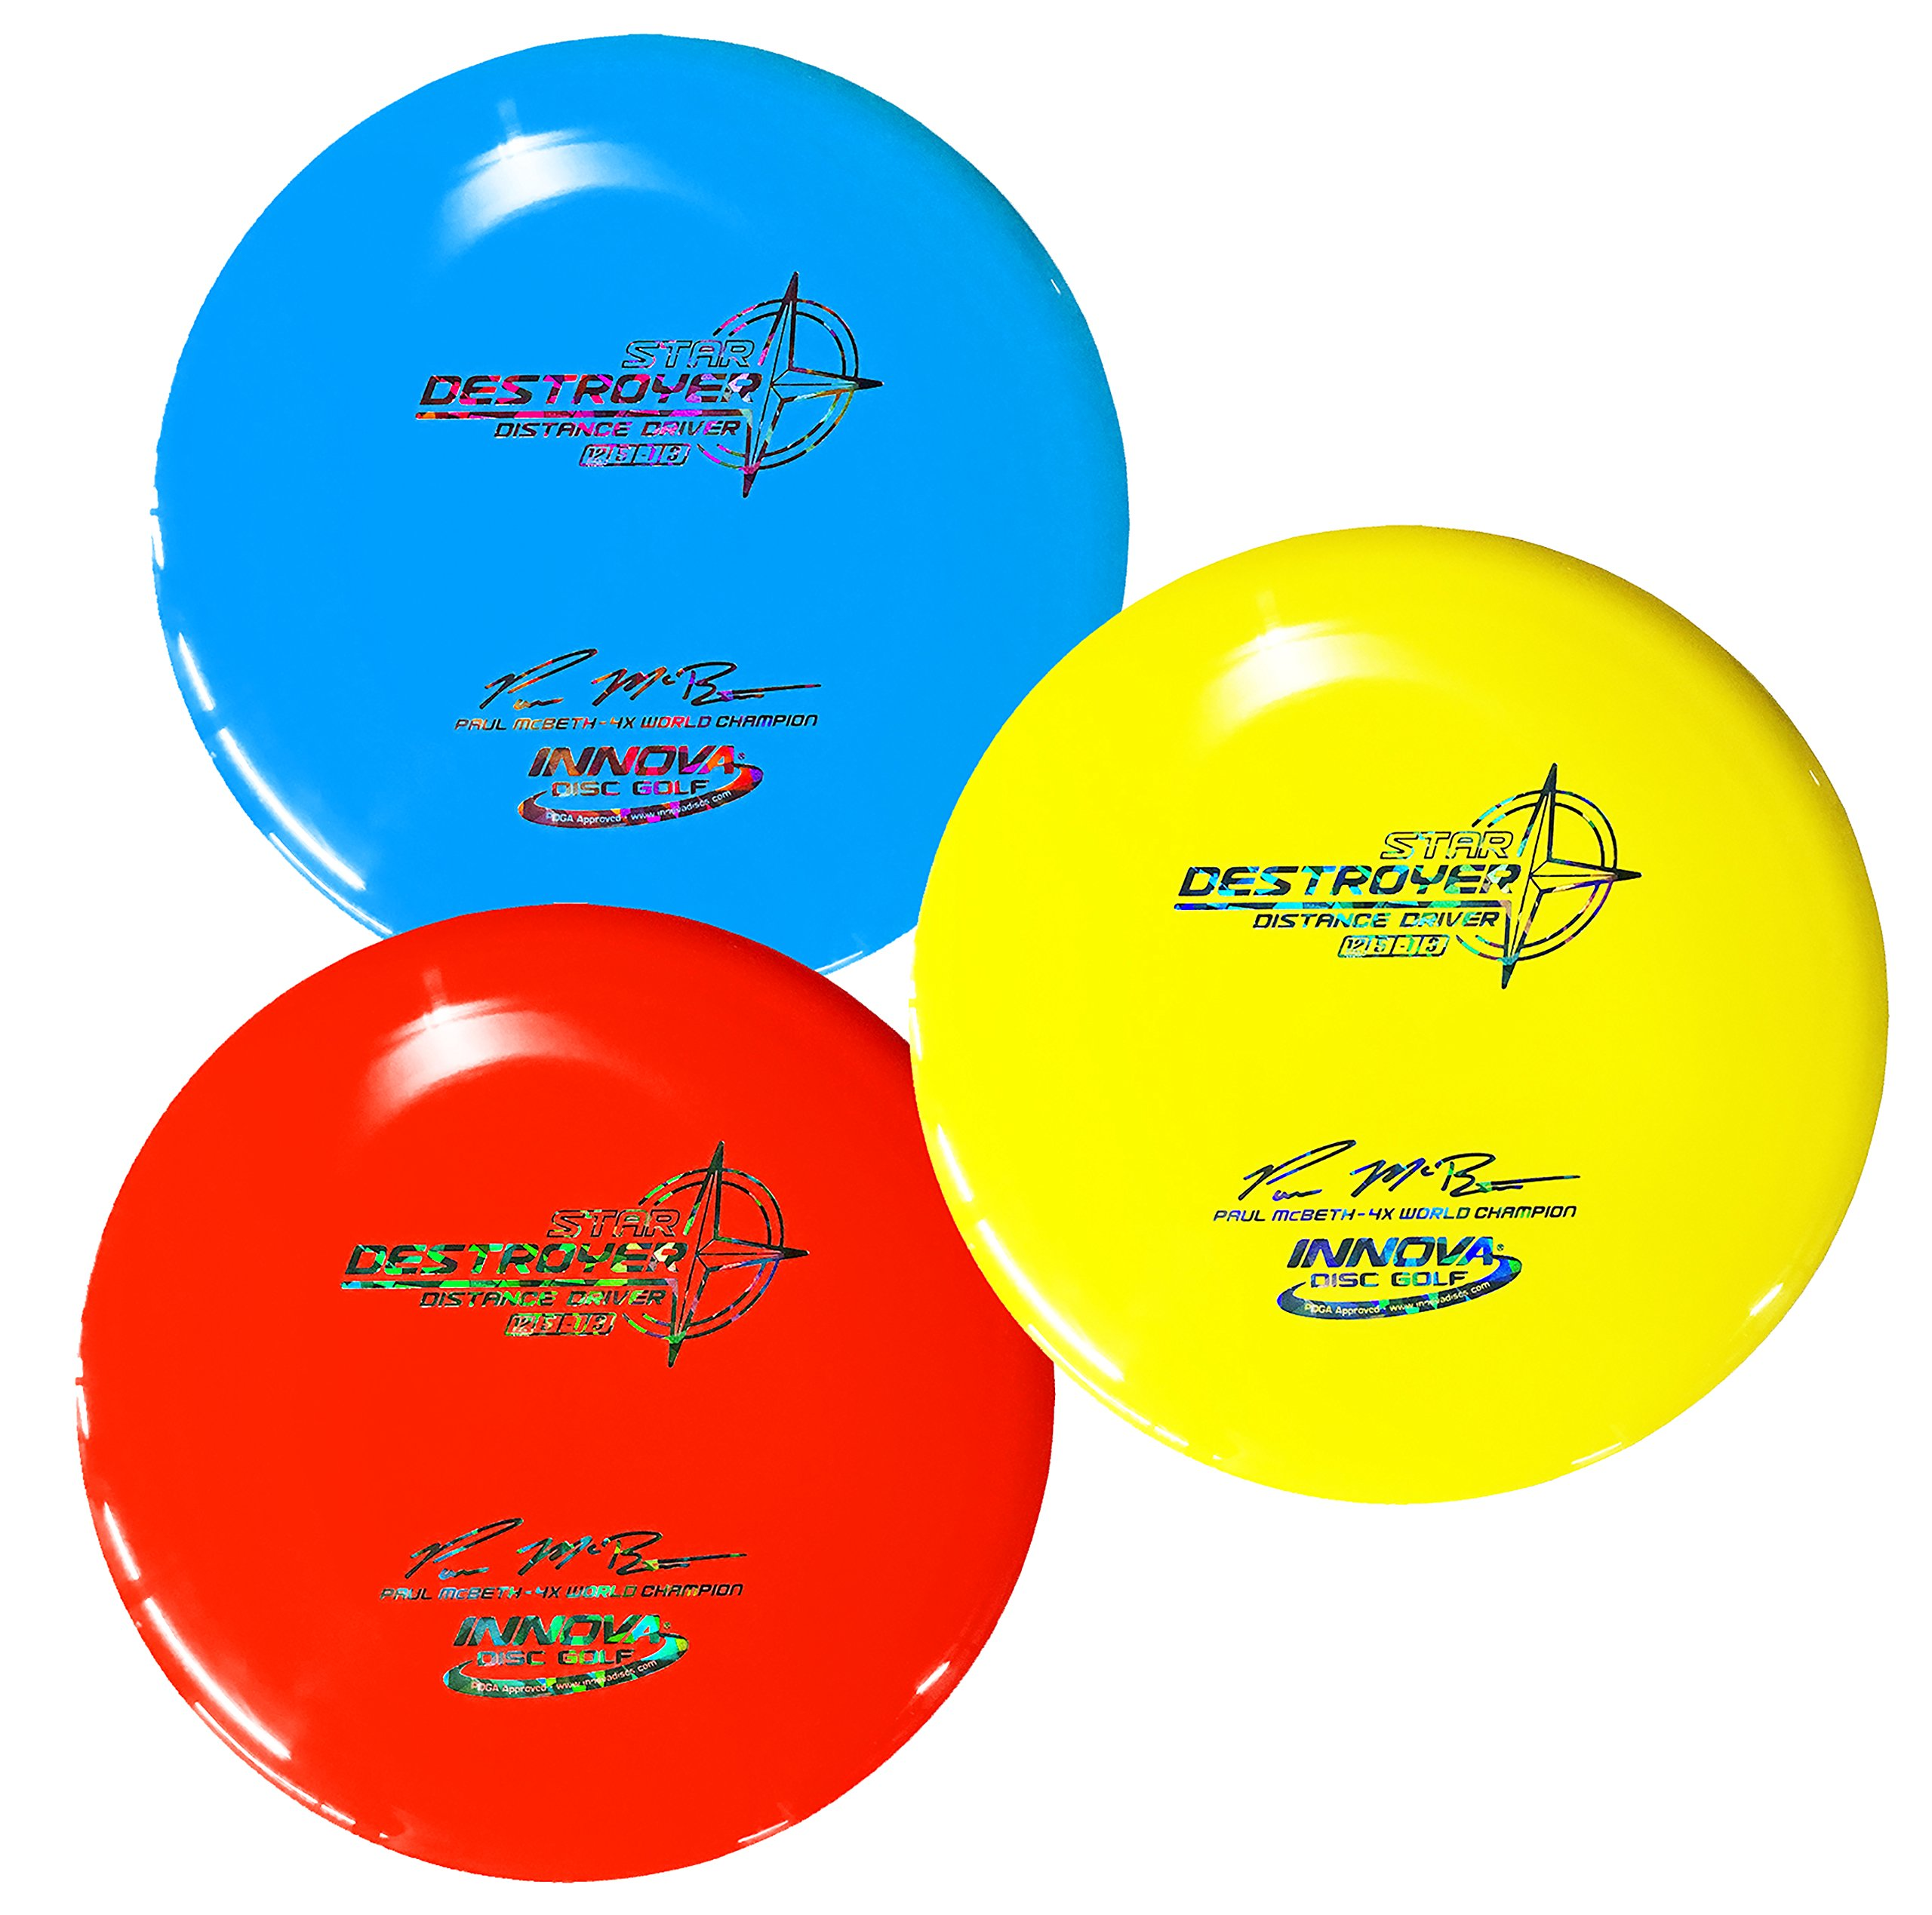 Innova Star Destroyer Disc Golf Paul McBeth 4X World Champion Distance Driver Pack of 3 (173-175g)